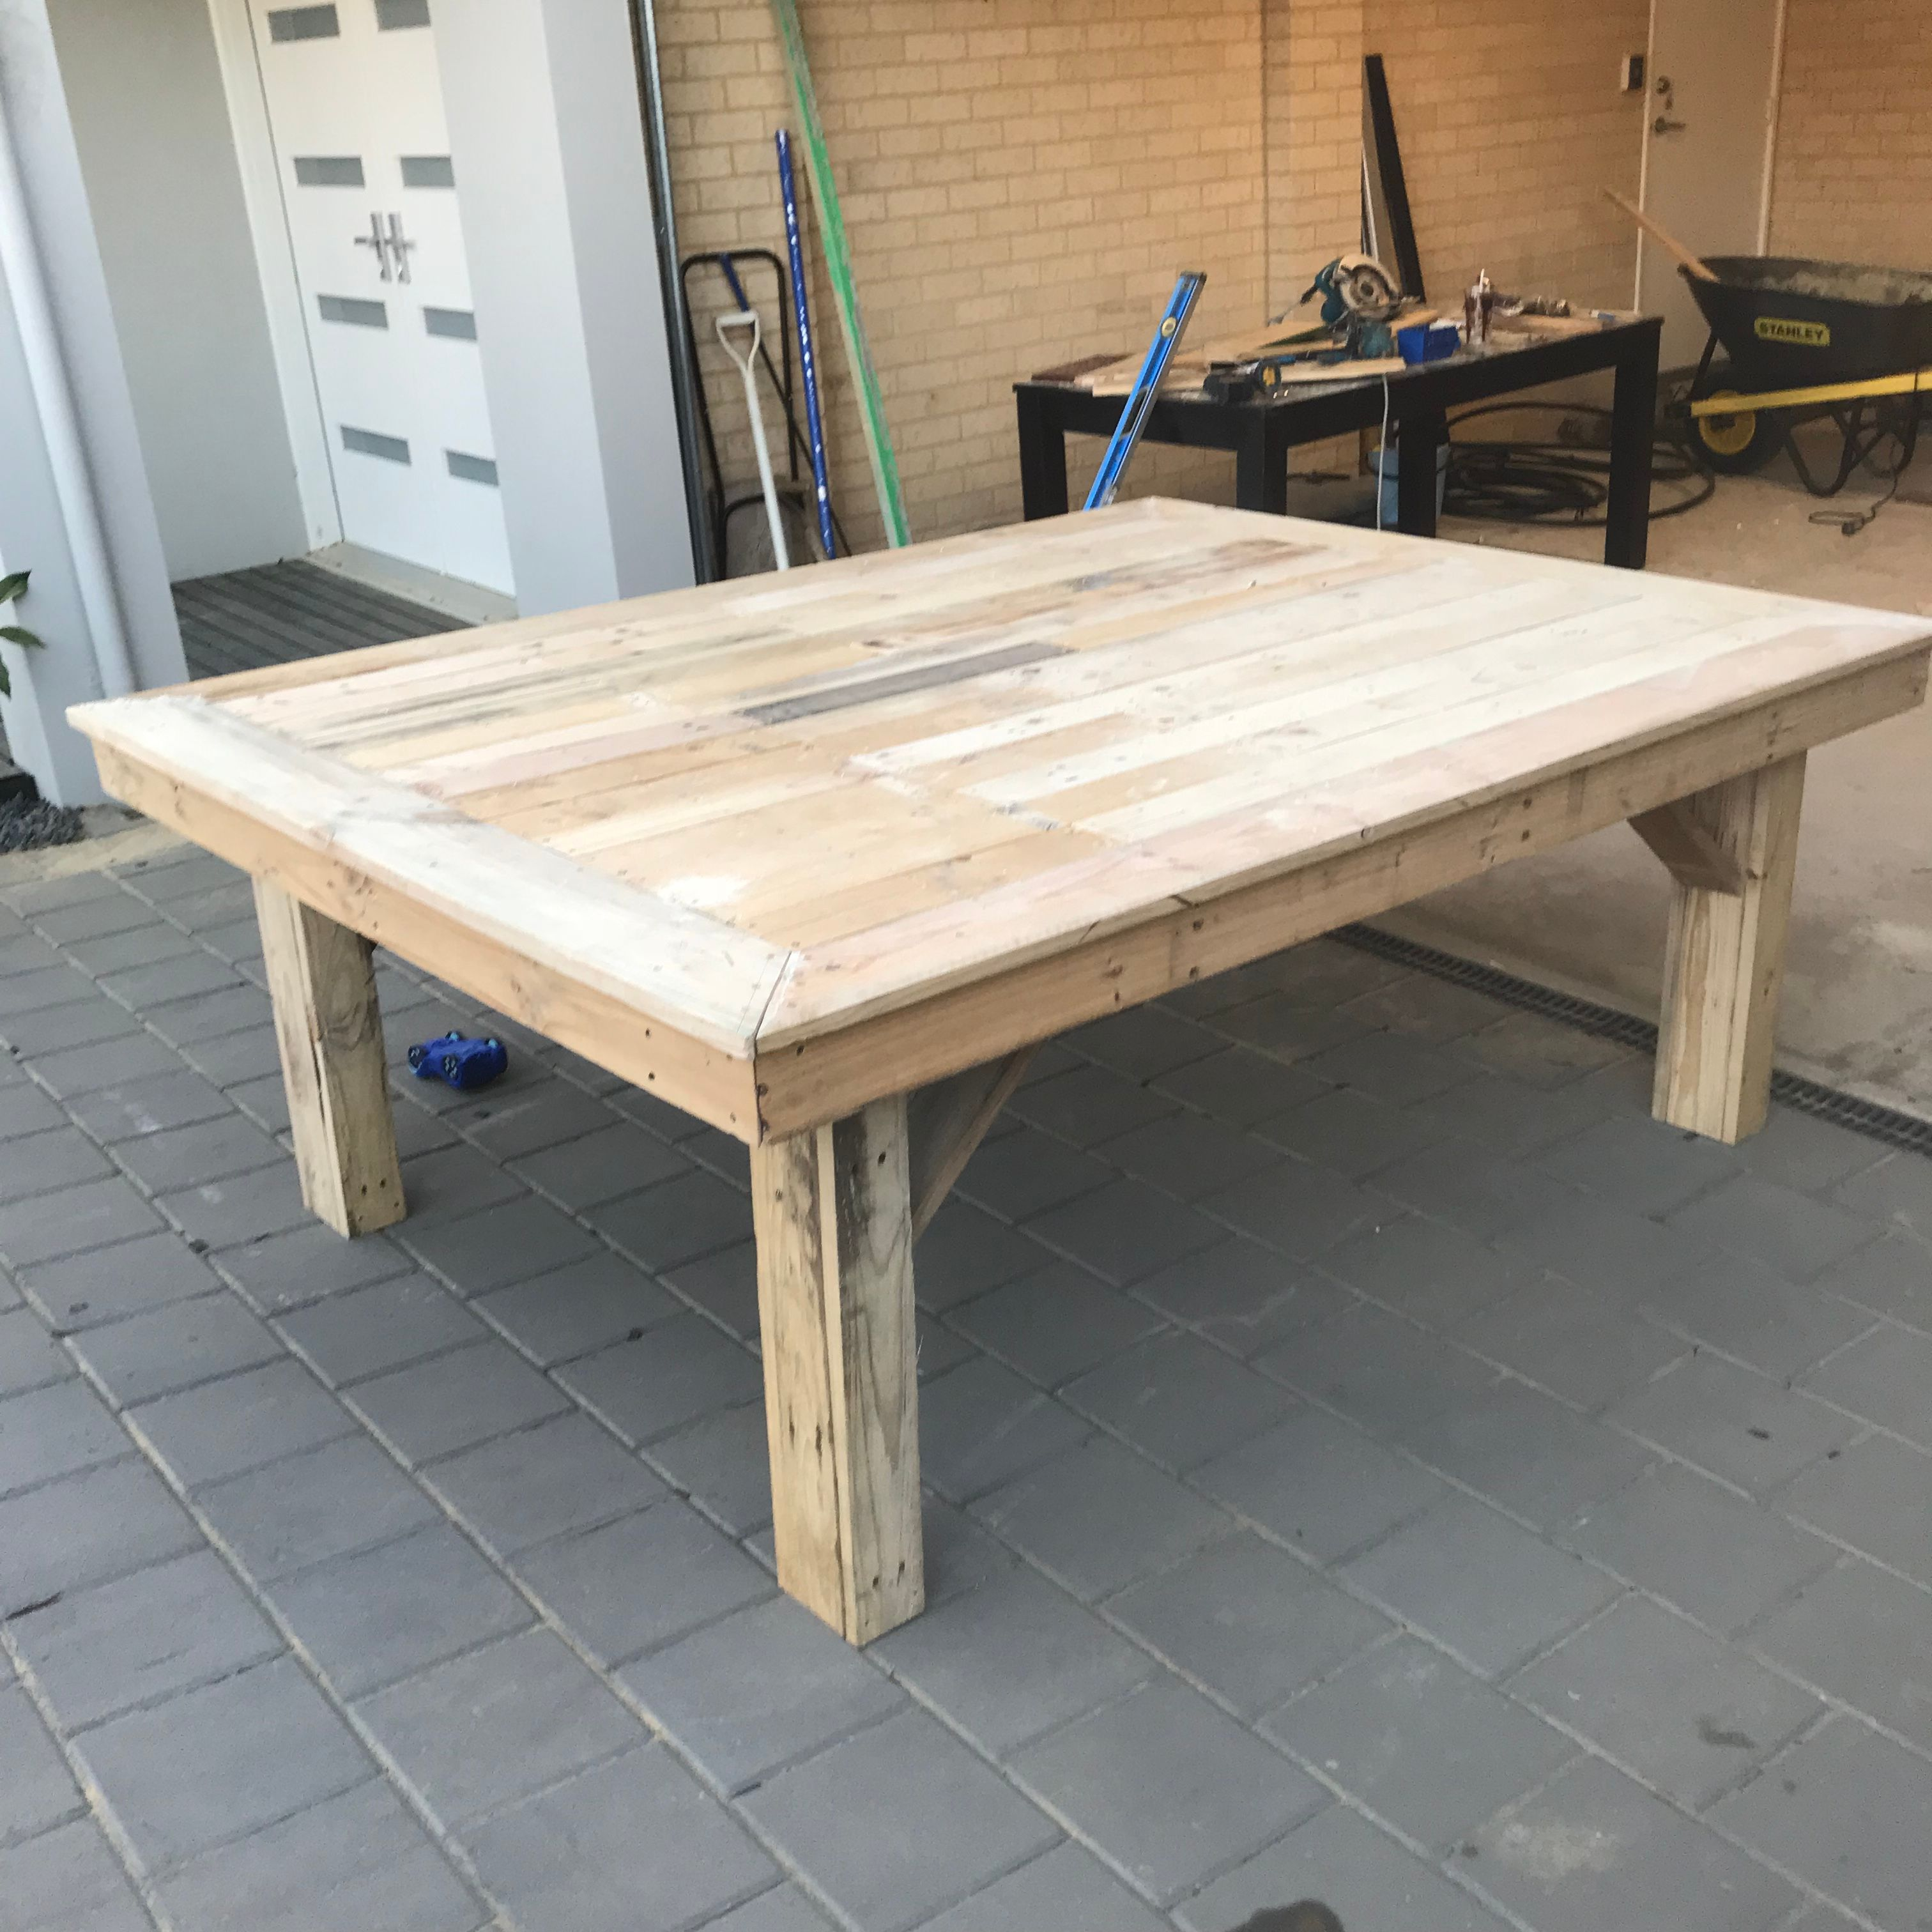 Recycled pallet wood outdoor table | Bunnings Workshop ...